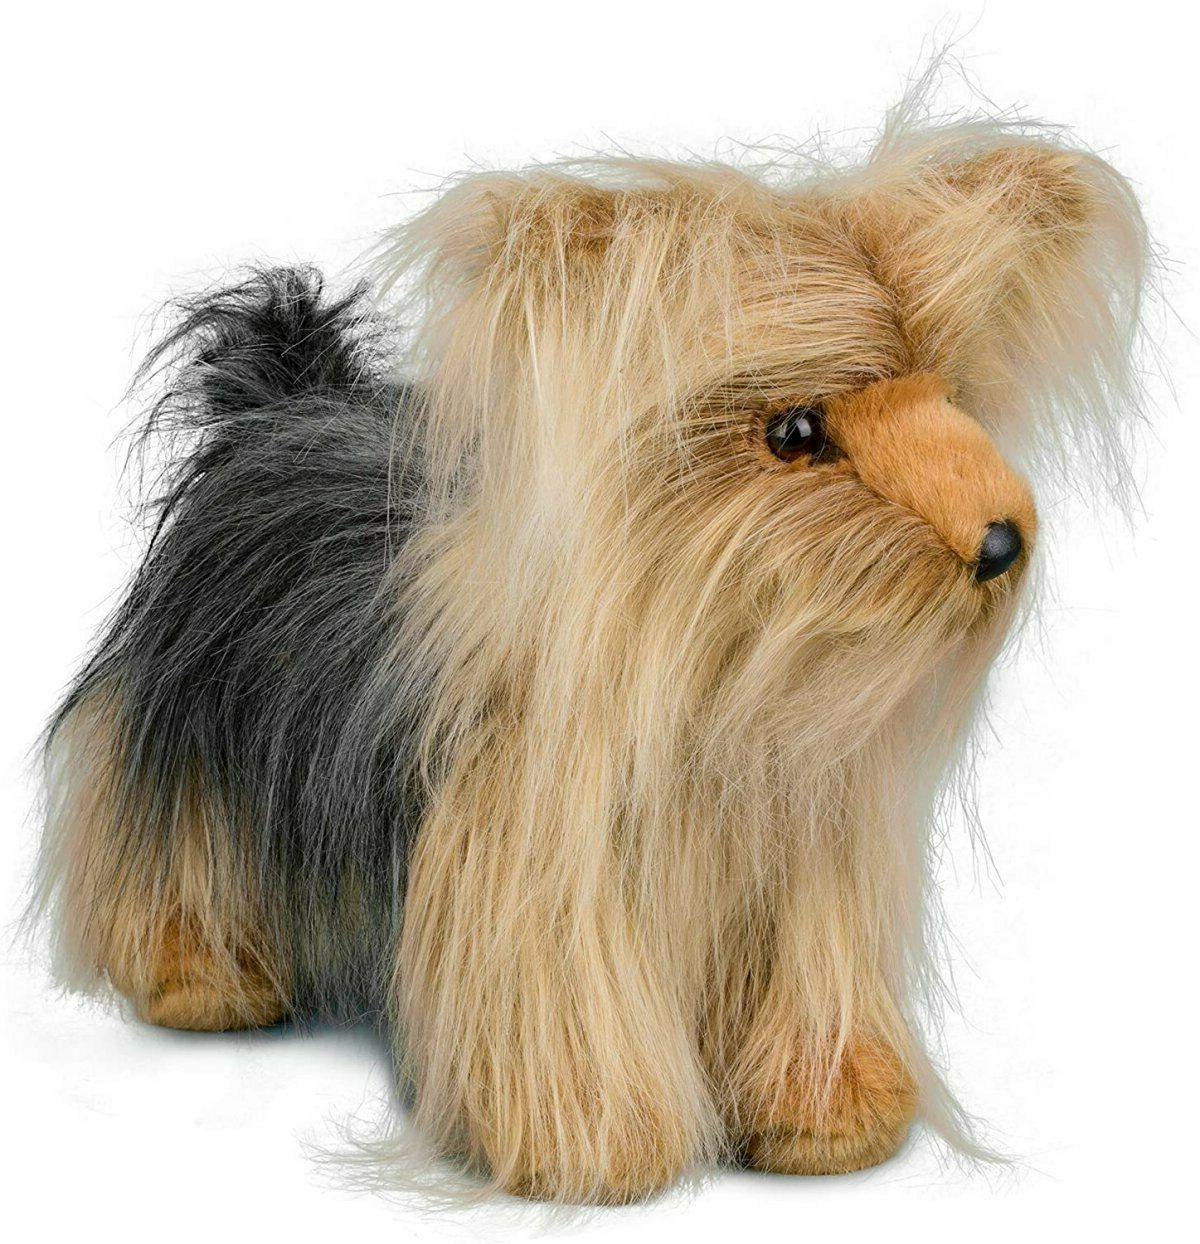 brenton 14 yorkshire terrier cuddle toy yorkie